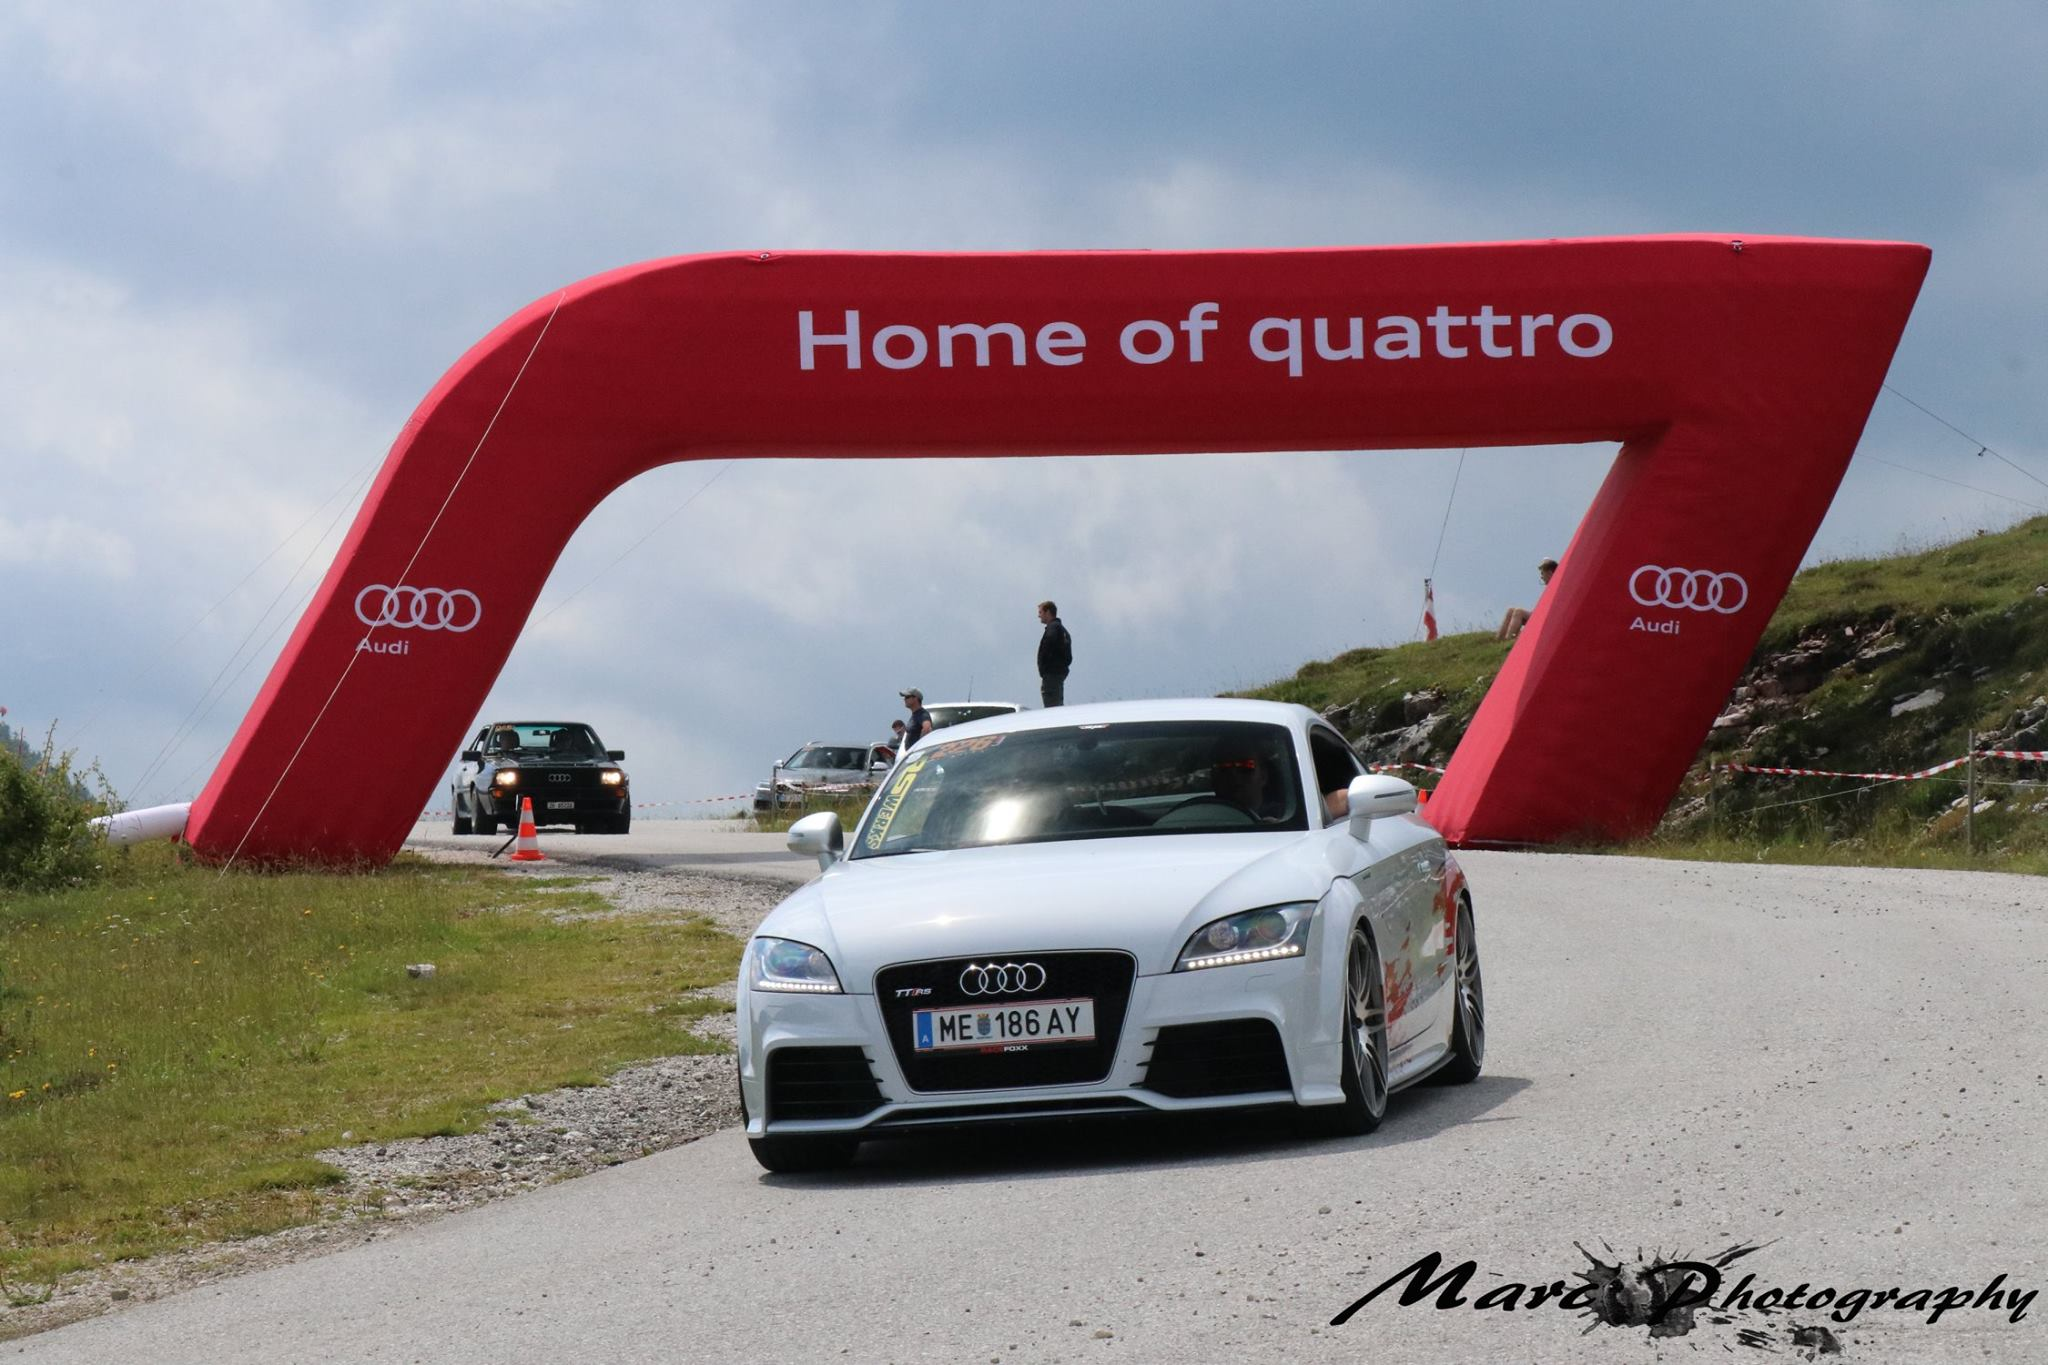 Fotos | quattrolegende 2018 - Album 5